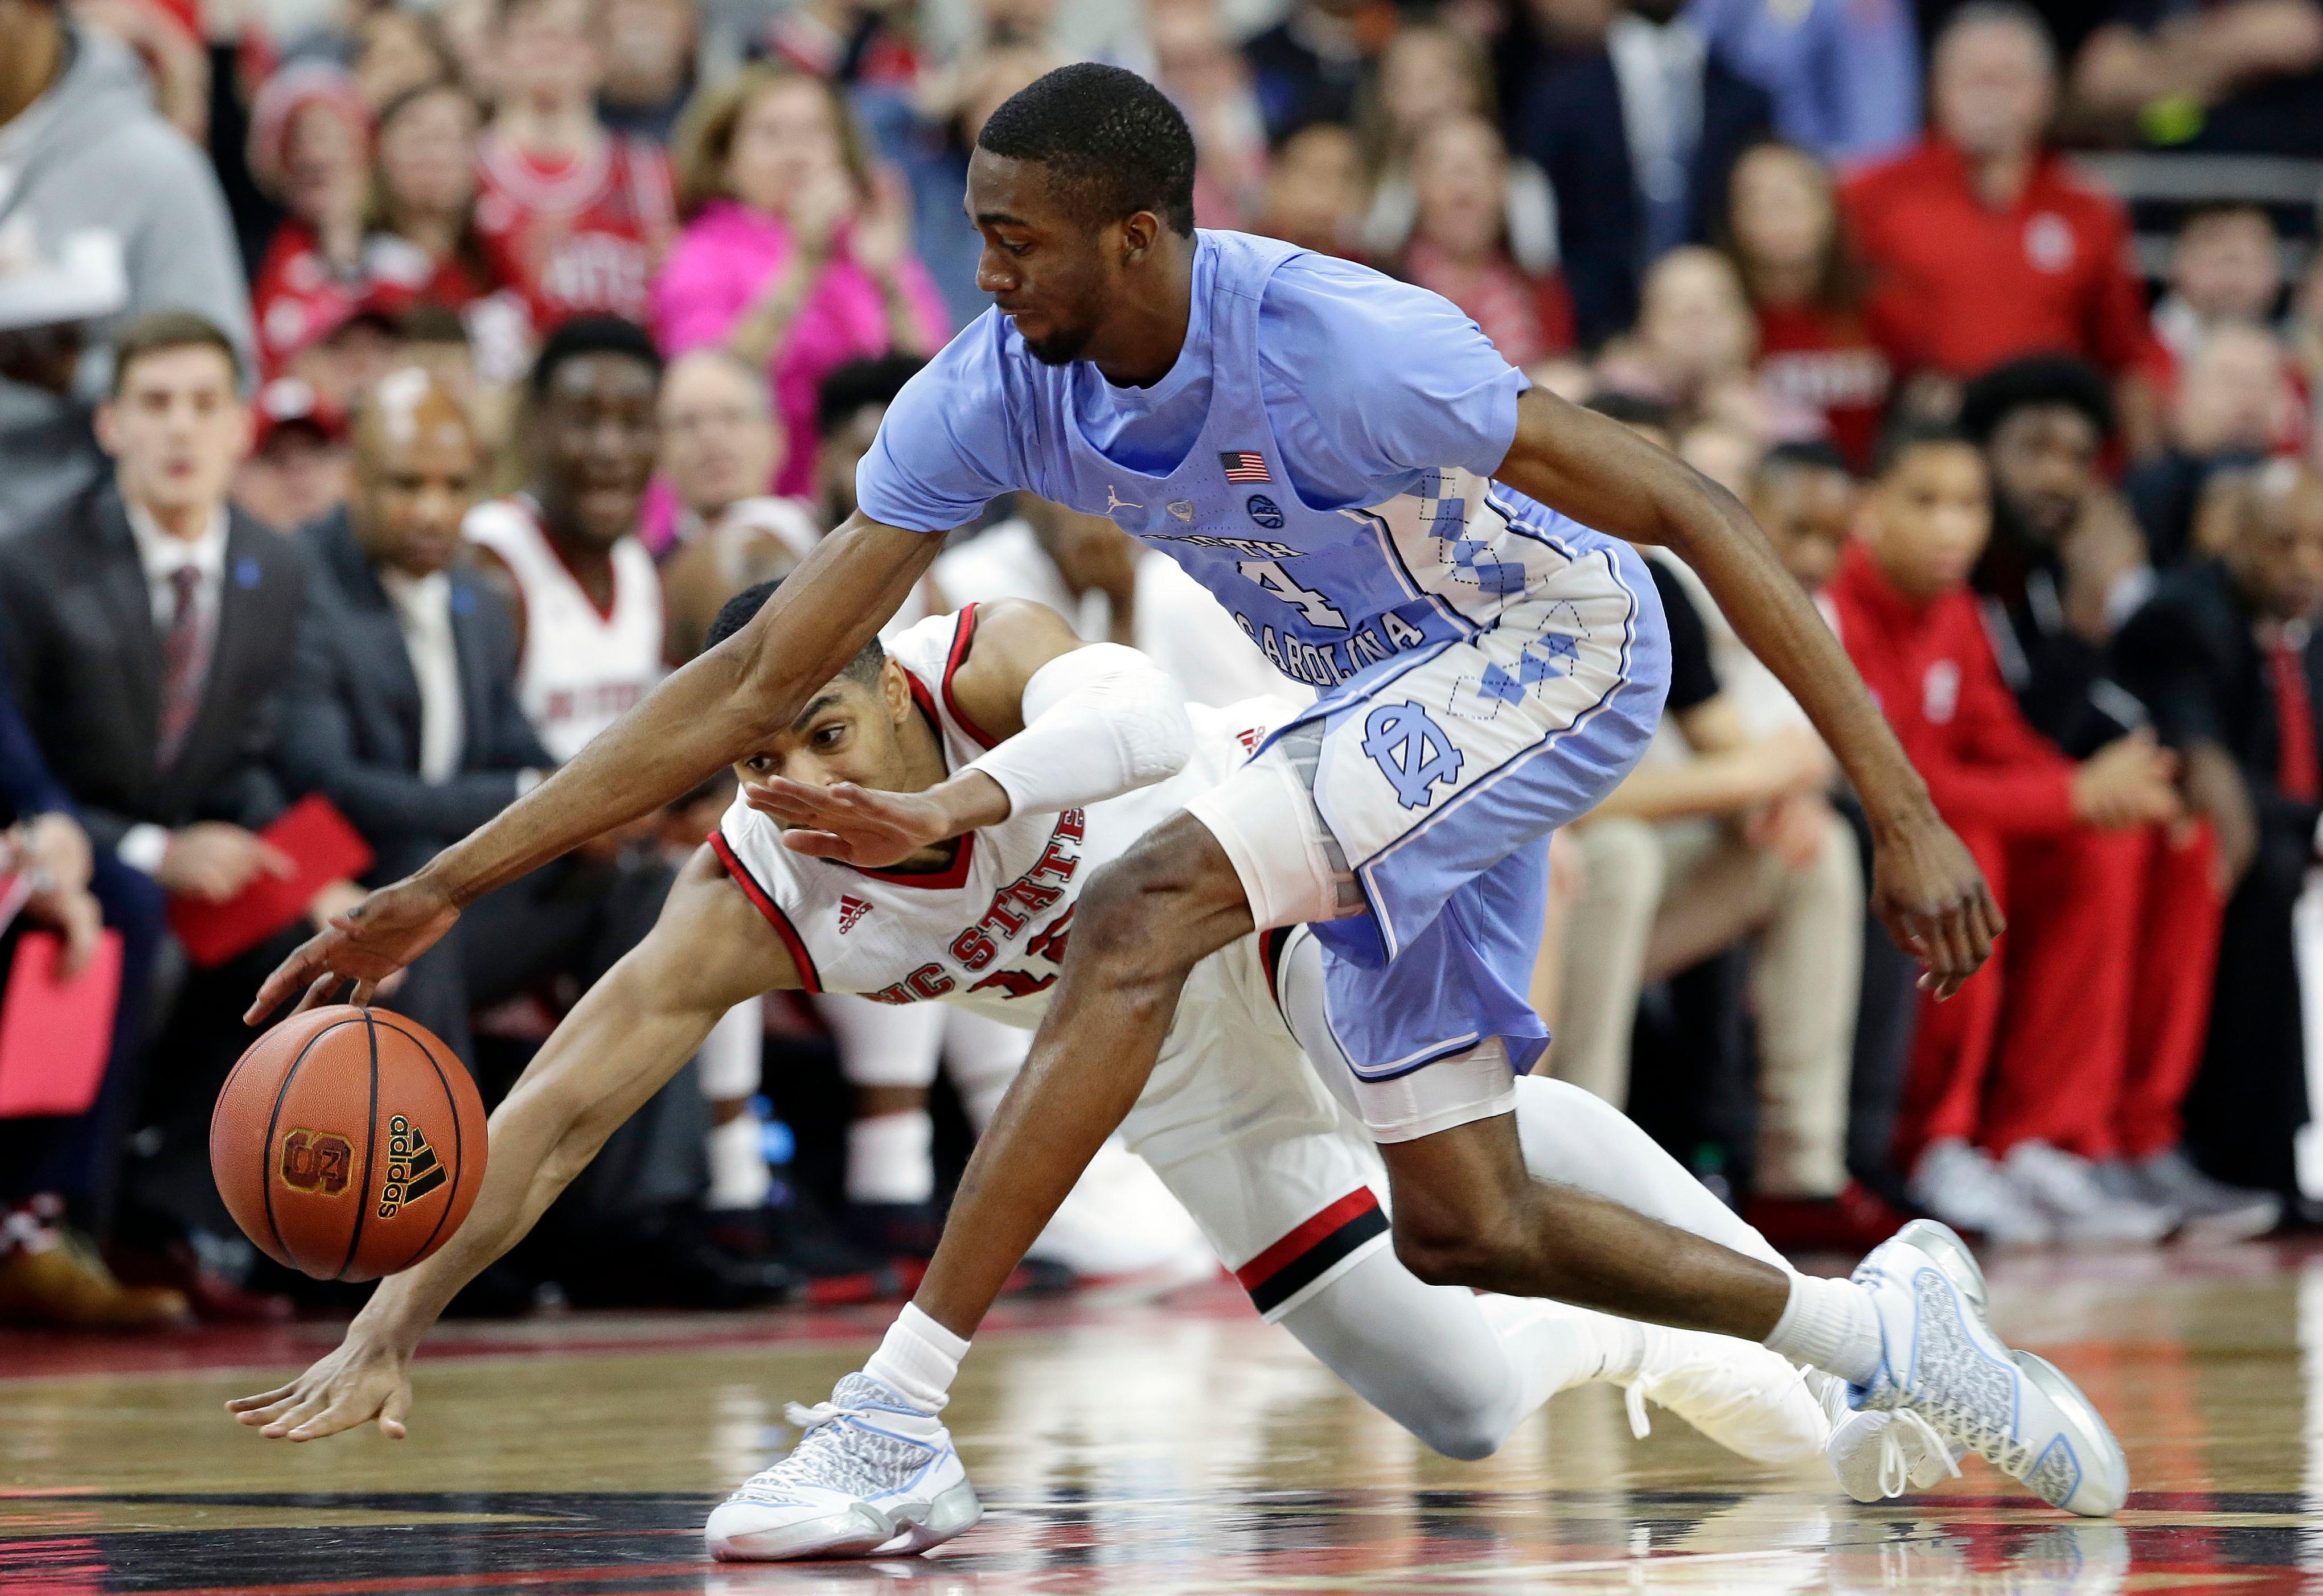 North Carolina's Brandon Robinson (4) and North Carolina State's Allerik Freeman chase a loose ball during the first half of an NCAA college basketball game in Raleigh, N.C., Saturday, Feb. 10, 2018. (AP Photo/Gerry Broome)